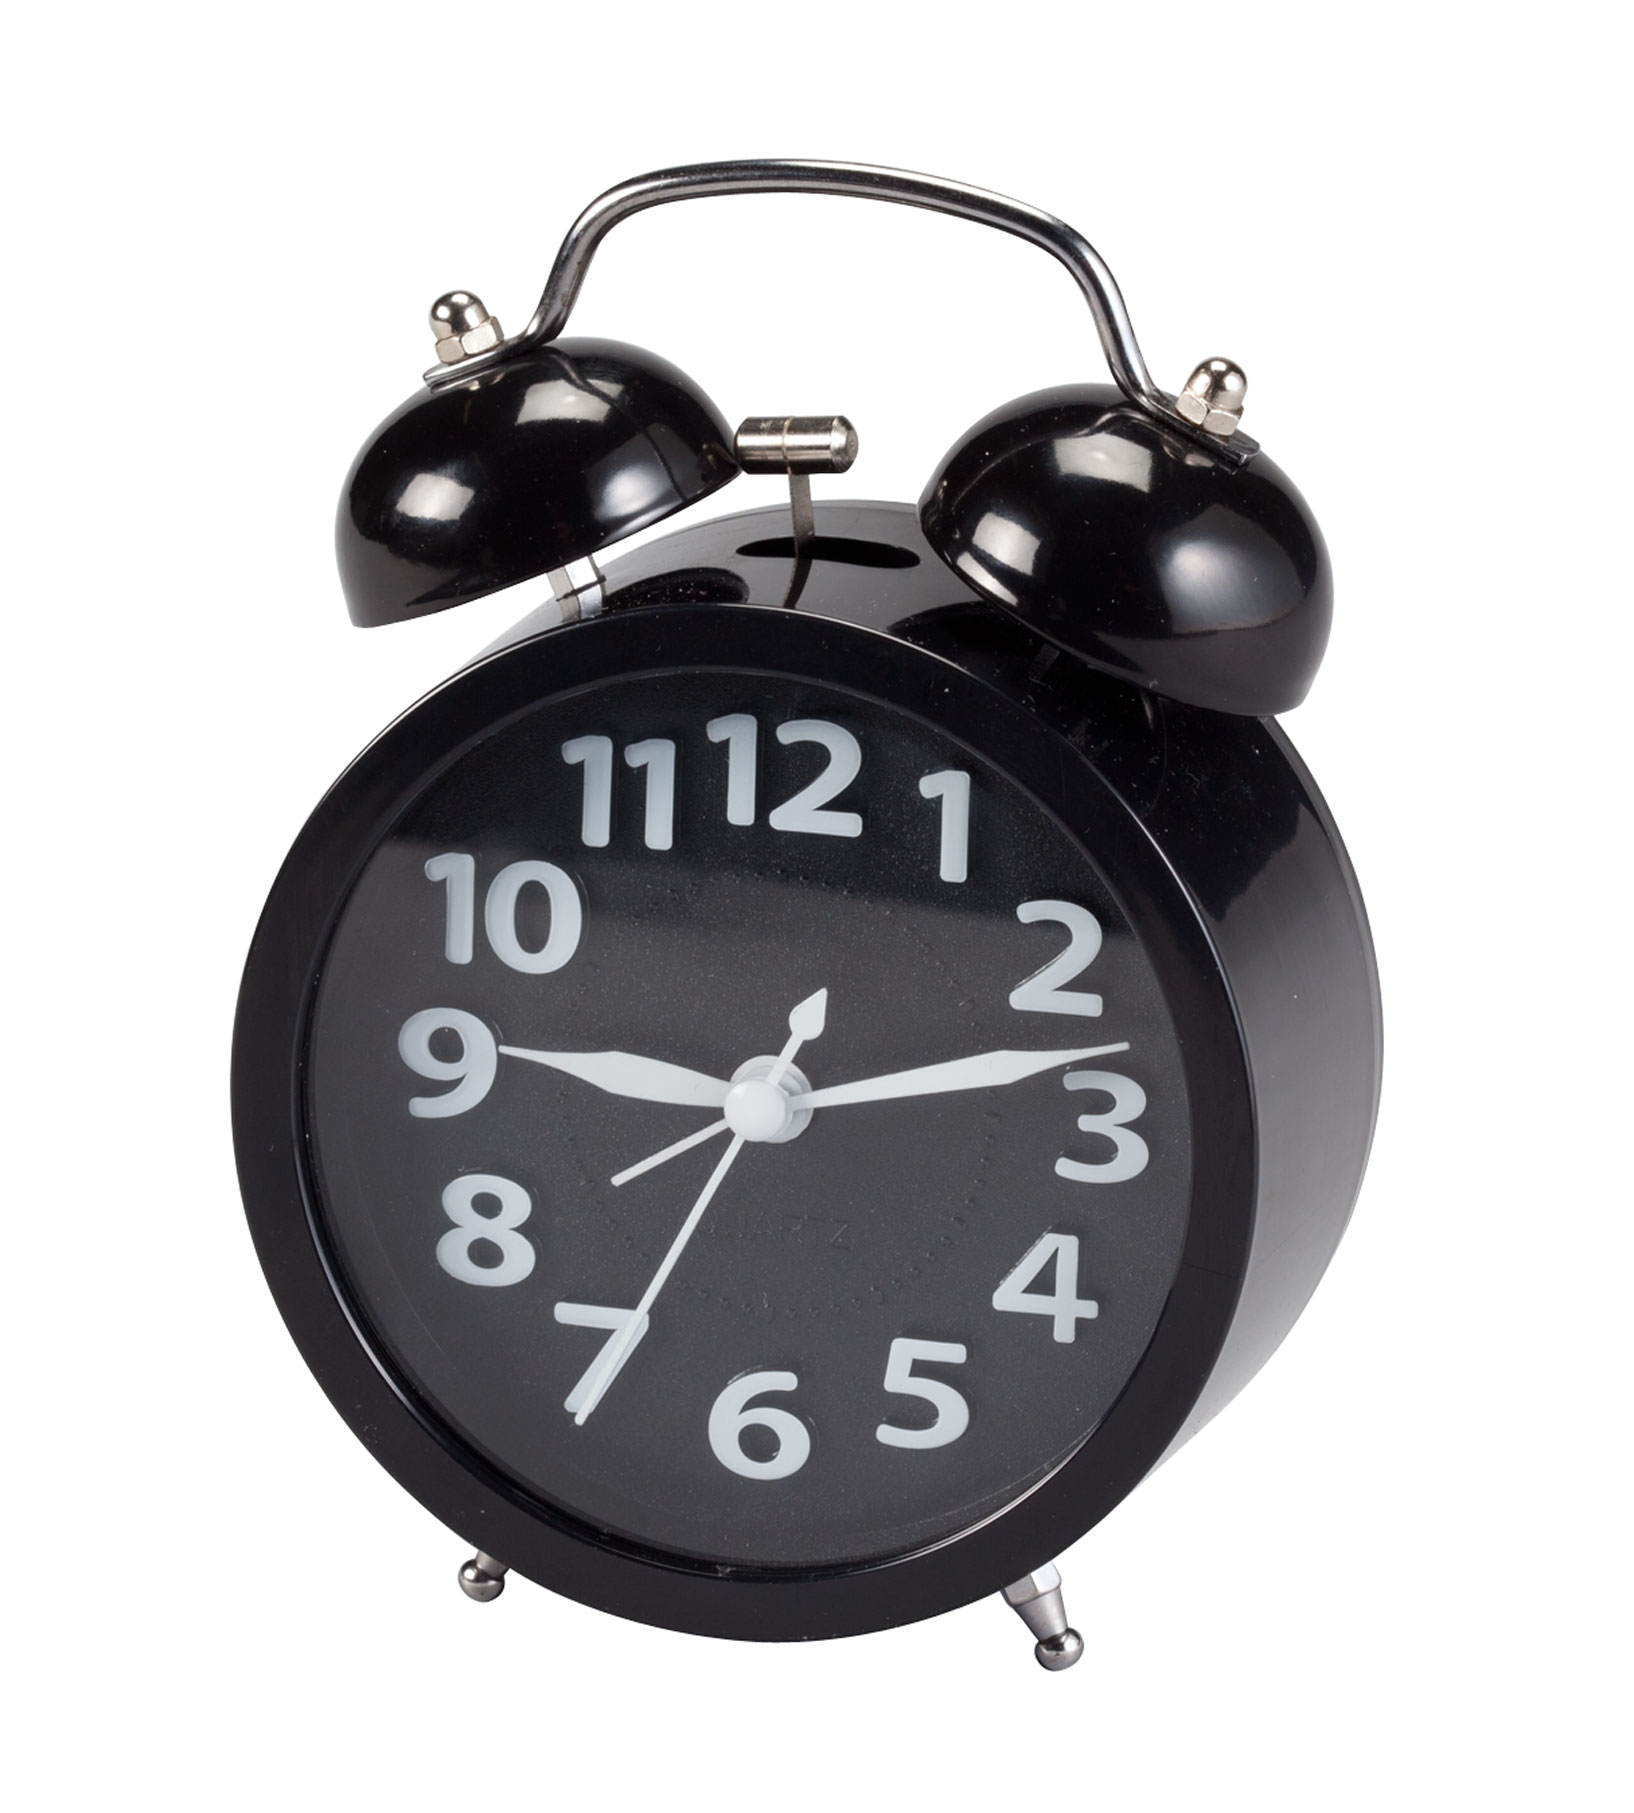 Retro Style Twin Bell Alarm Clock Retro style twin bell alarm clock adds vintage fun to your mornings. As its classic hammer strikes the twin bells, it's loud enough to wake even the heaviest sleepersonalized! In addition to the classic chrome carrying handle and feet, large numbers, second hand and an easy-on/off alarm switch, the bell alarm clock features modern upgrades like a push-button light that illuminates the face and battery operation. Requires 1 AA battery (not included). Retro alarm clock measures 3 3/4  W x 1 3/4  D x 5  H. Metal.